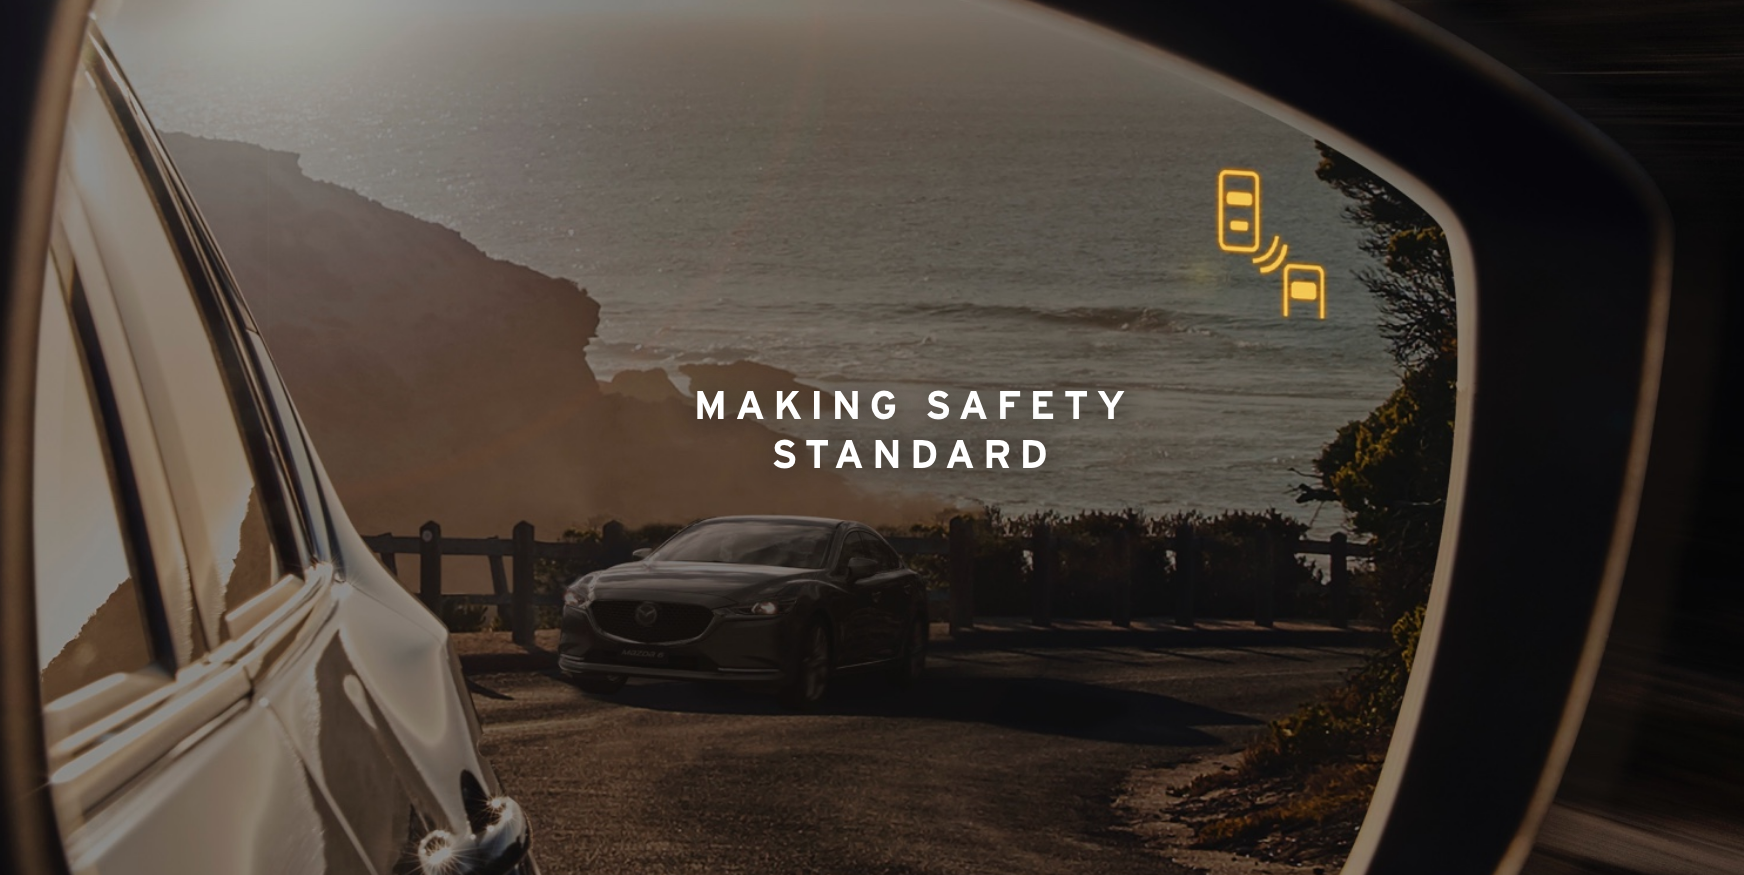 Mazda is putting safety first